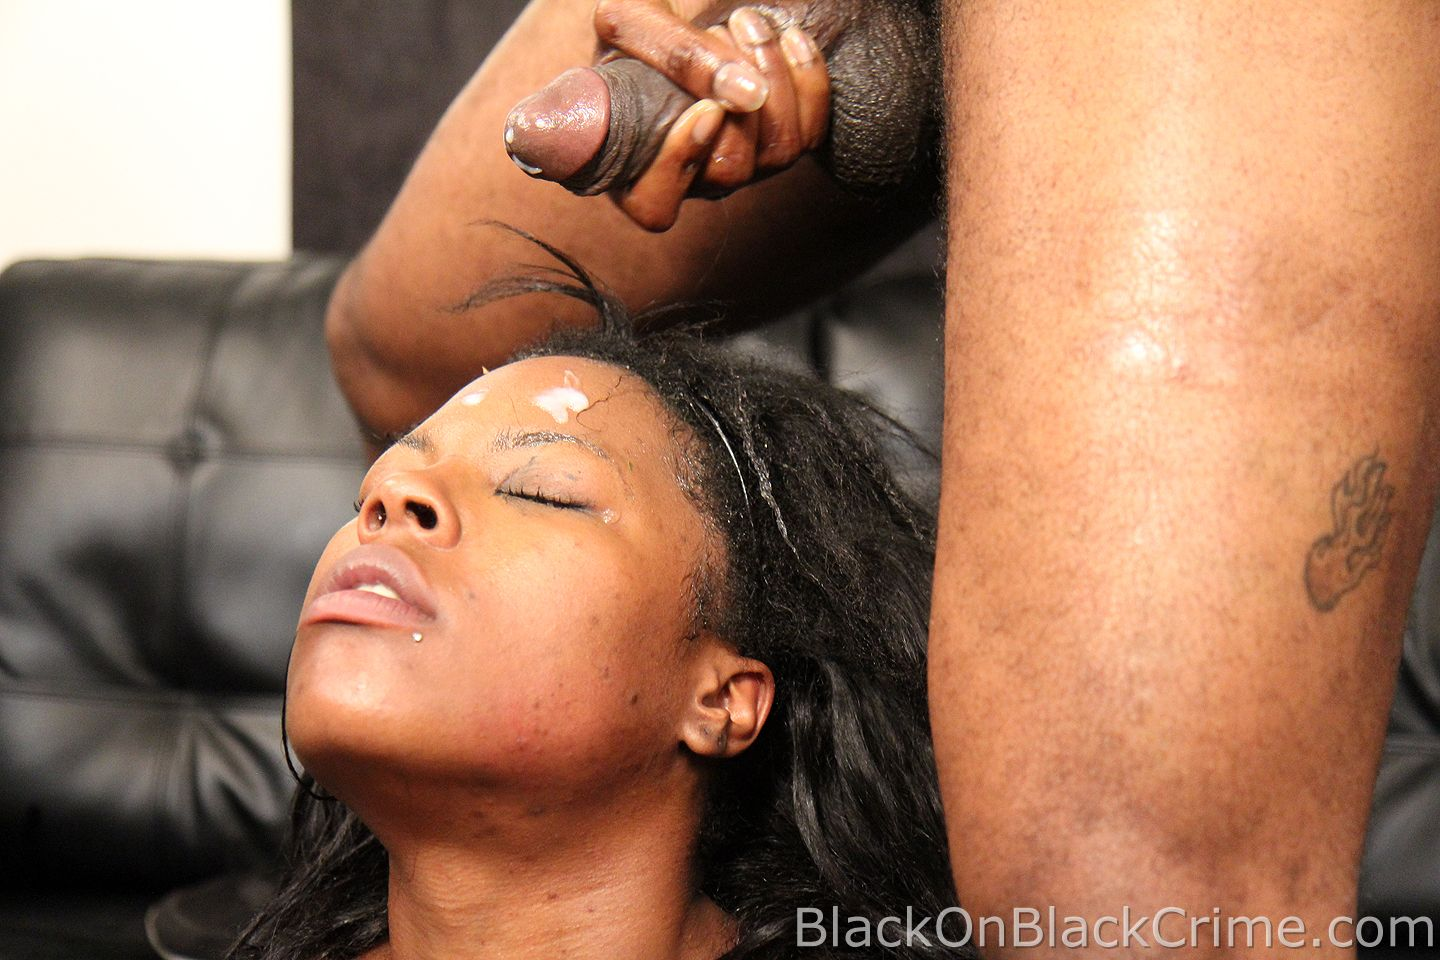 blackonblackcrime_coffee_brown_14